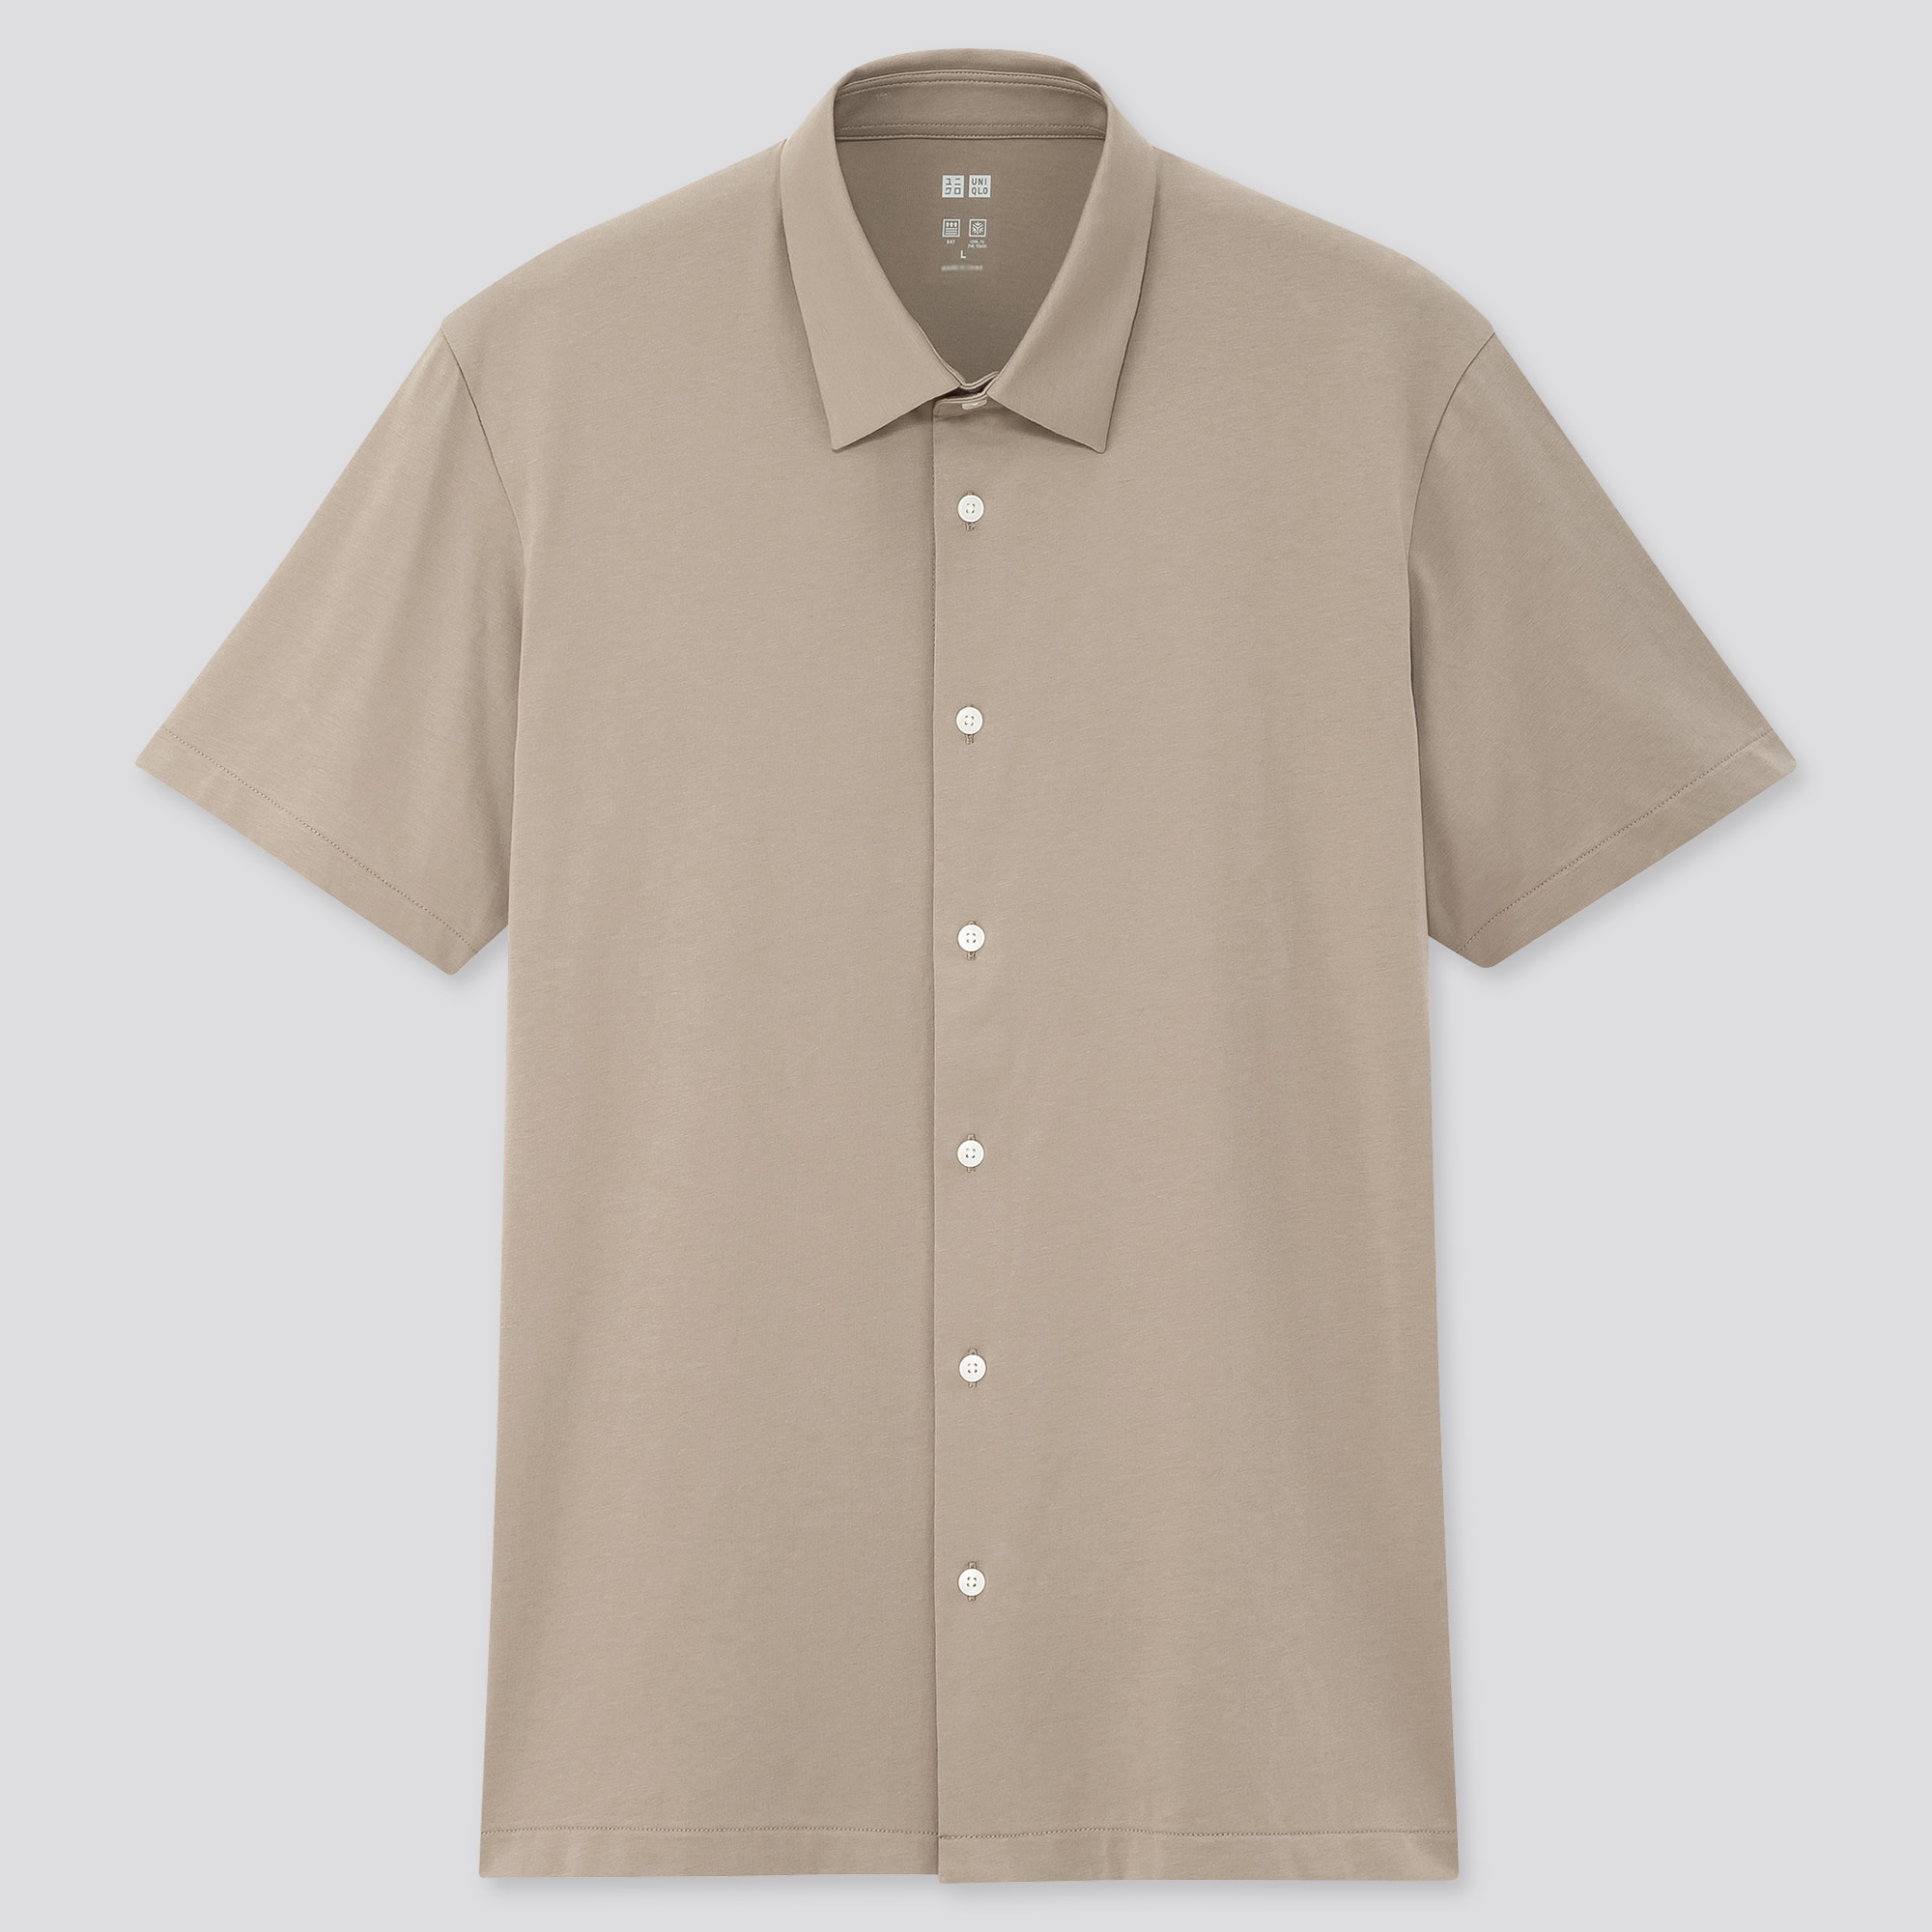 Uniqlo men airism jersey short-sleeve polo shirt